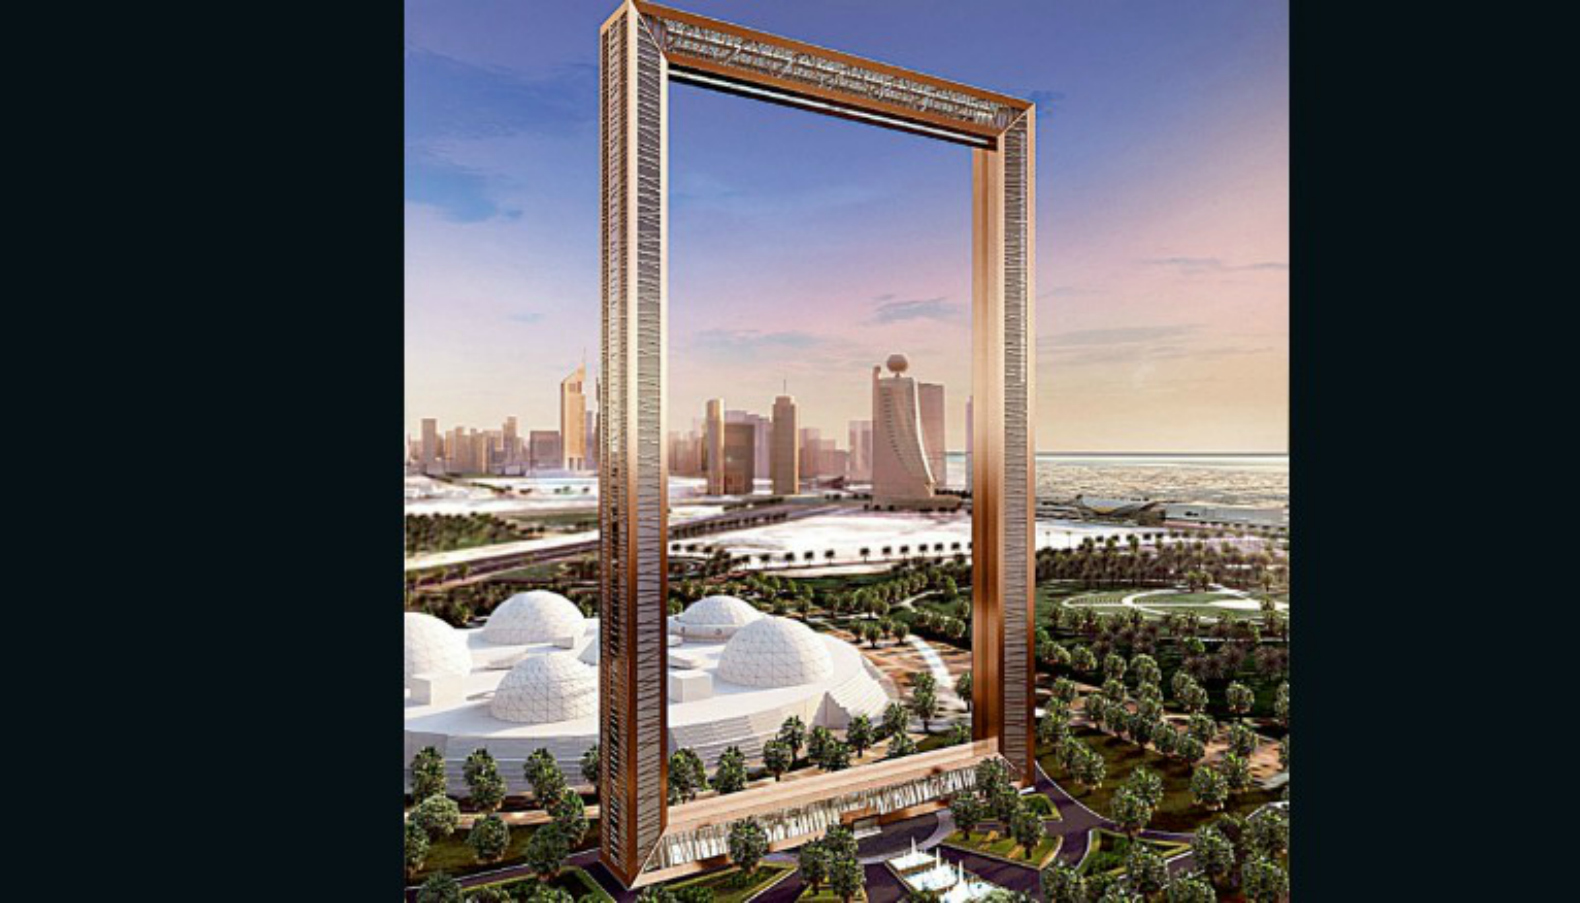 dubai 39 s craziest tower yet is the world 39 s largest picture. Black Bedroom Furniture Sets. Home Design Ideas